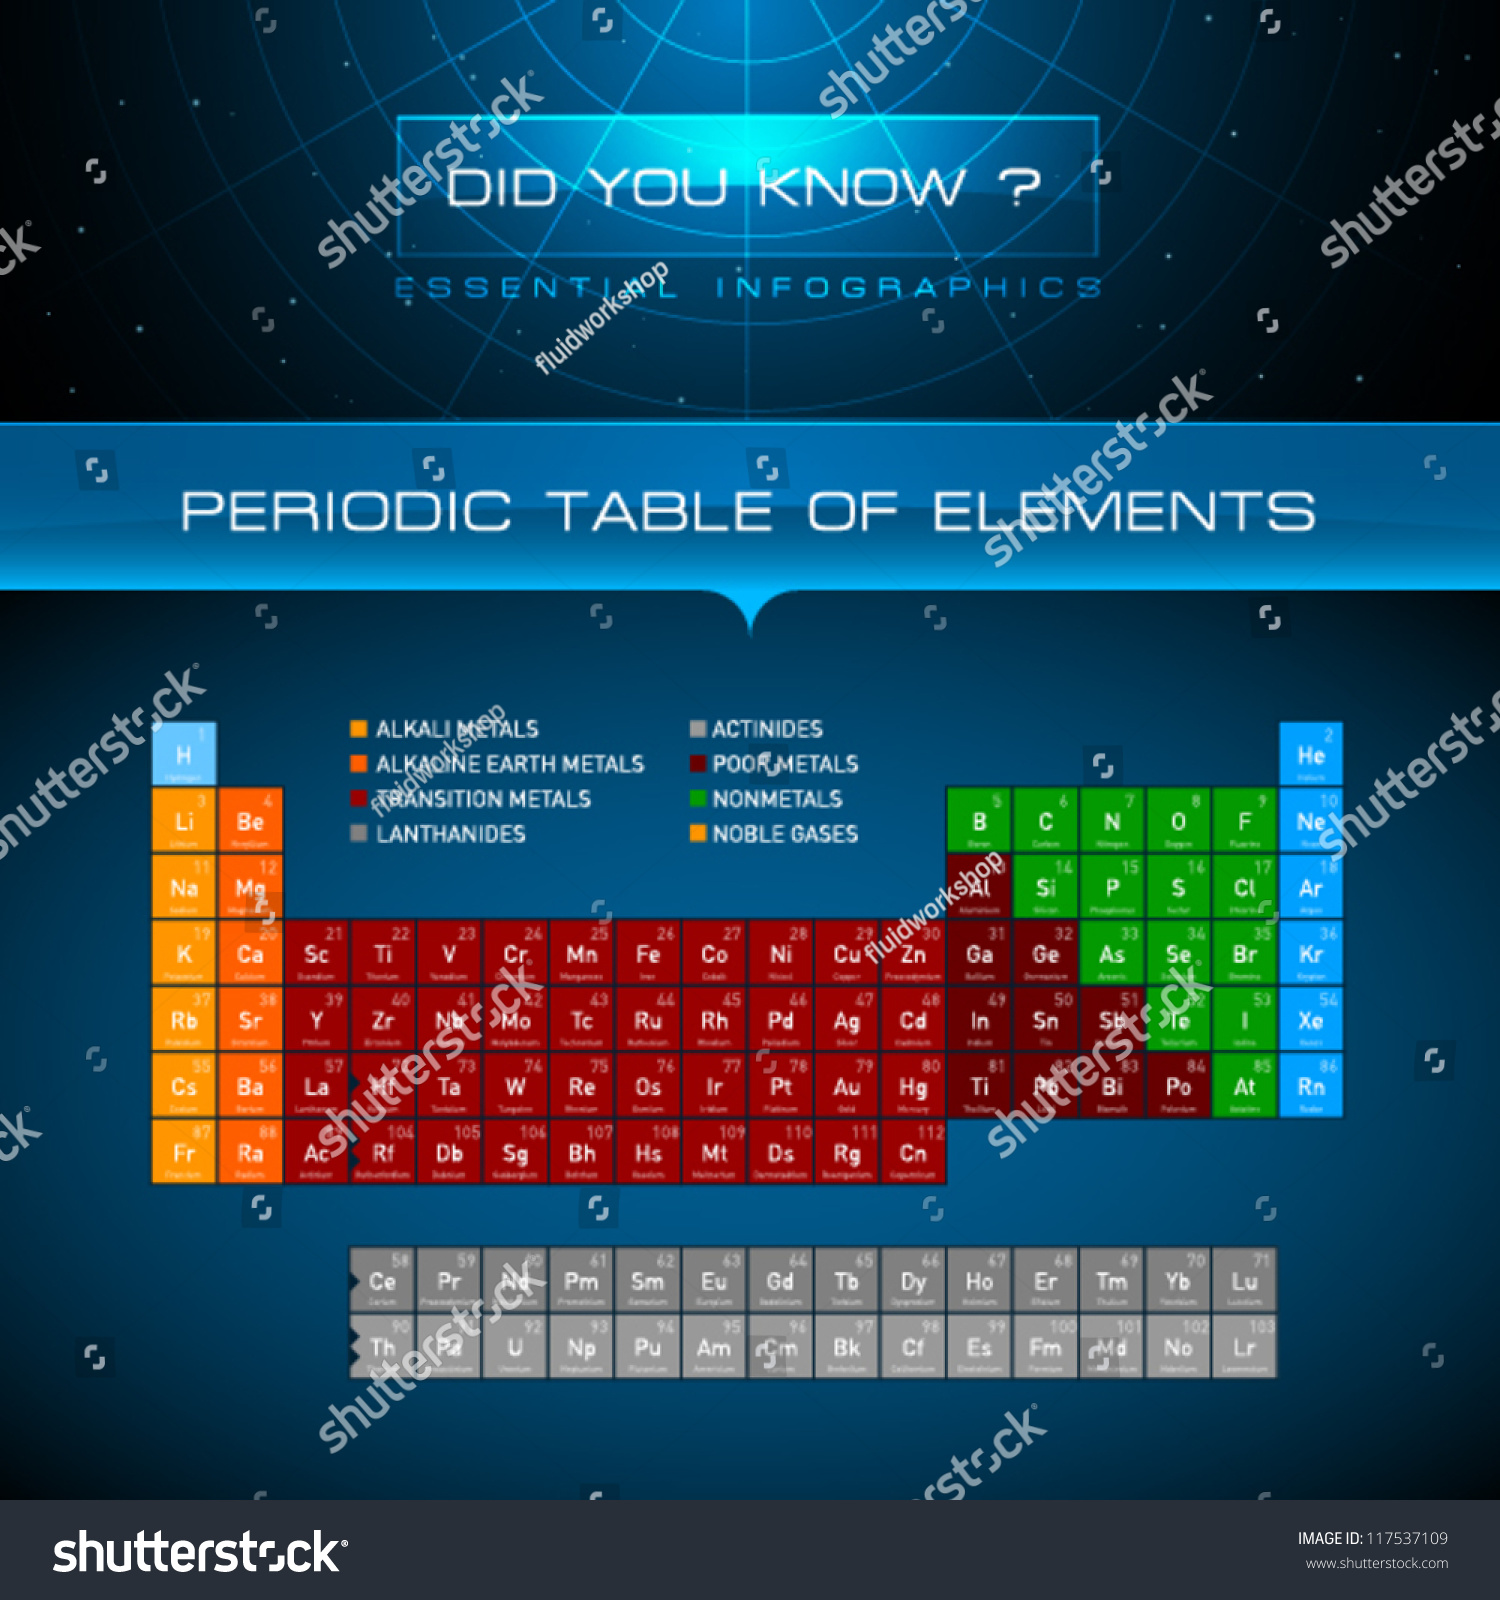 Vector infographic periodic table elements stock vector 117537109 vector infographic periodic table of elements gamestrikefo Choice Image